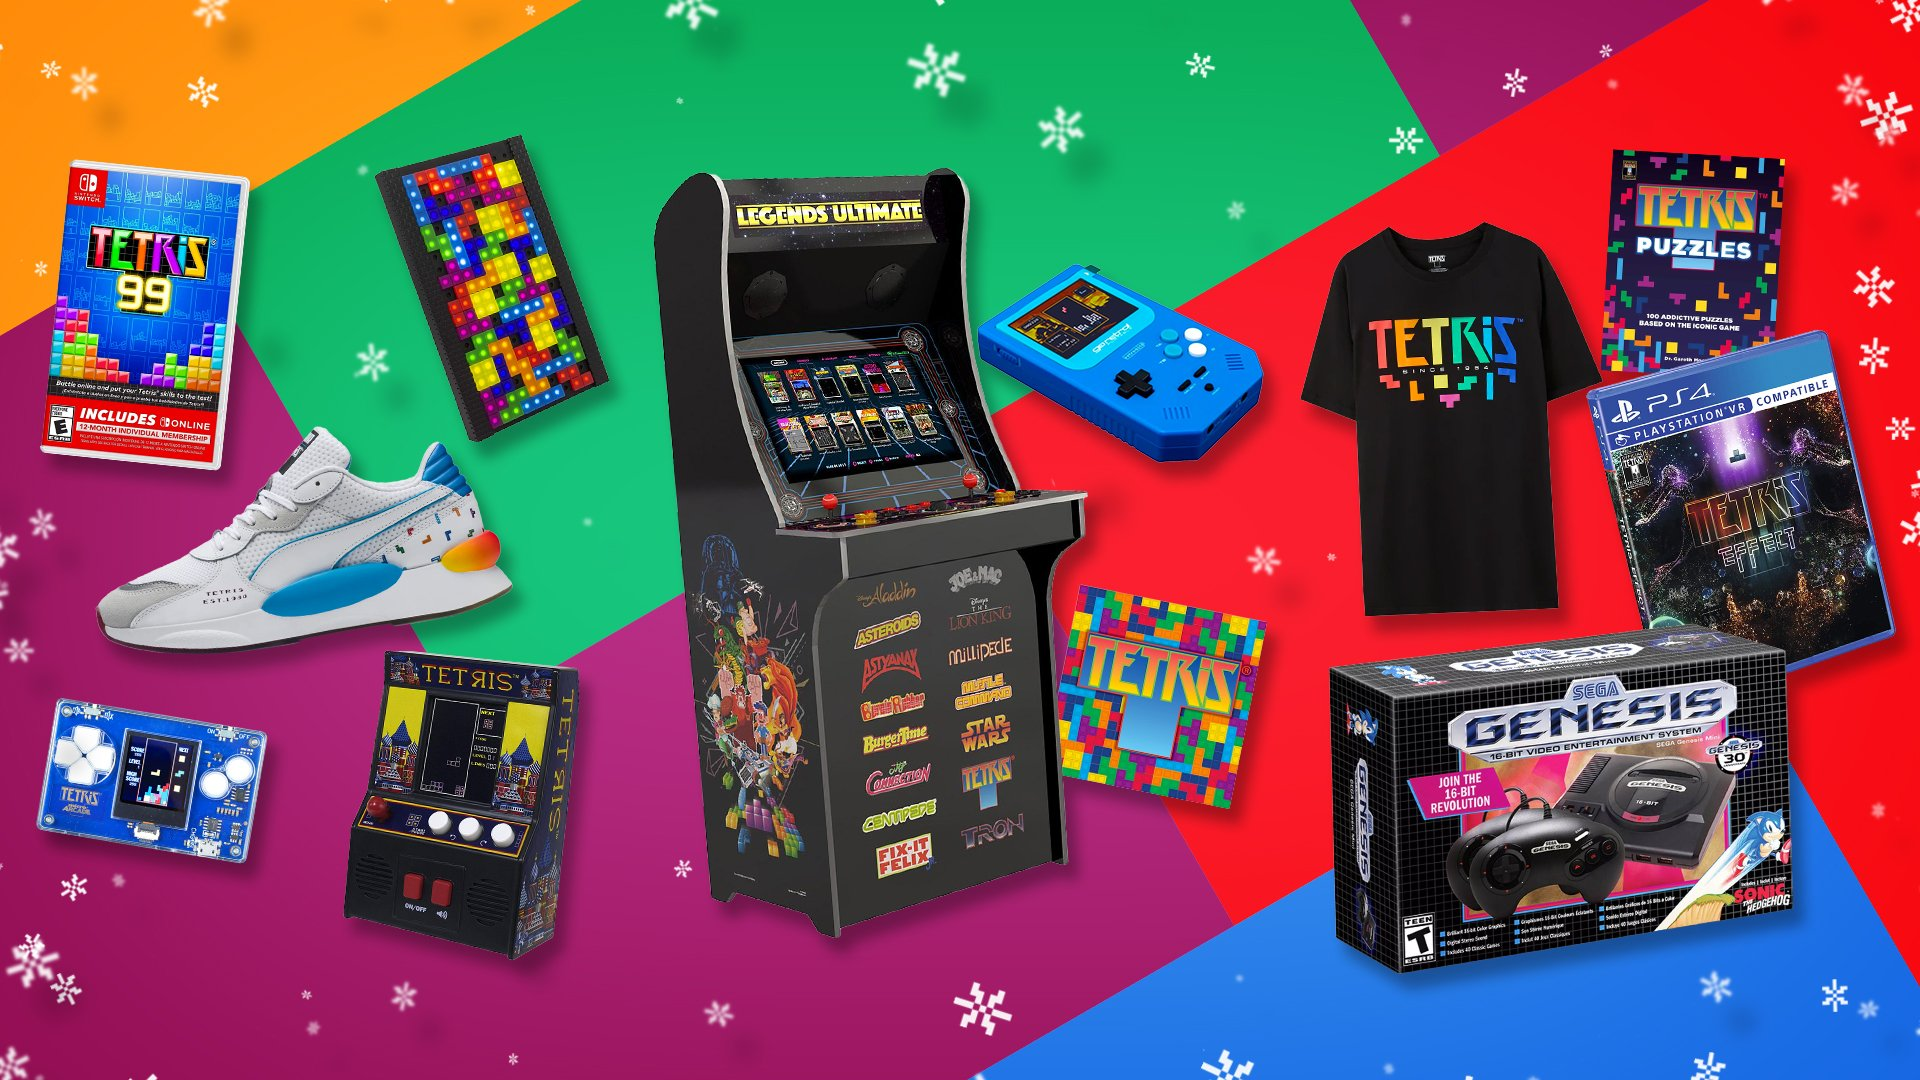 12 Gifts of Christmas - Tetris Edition